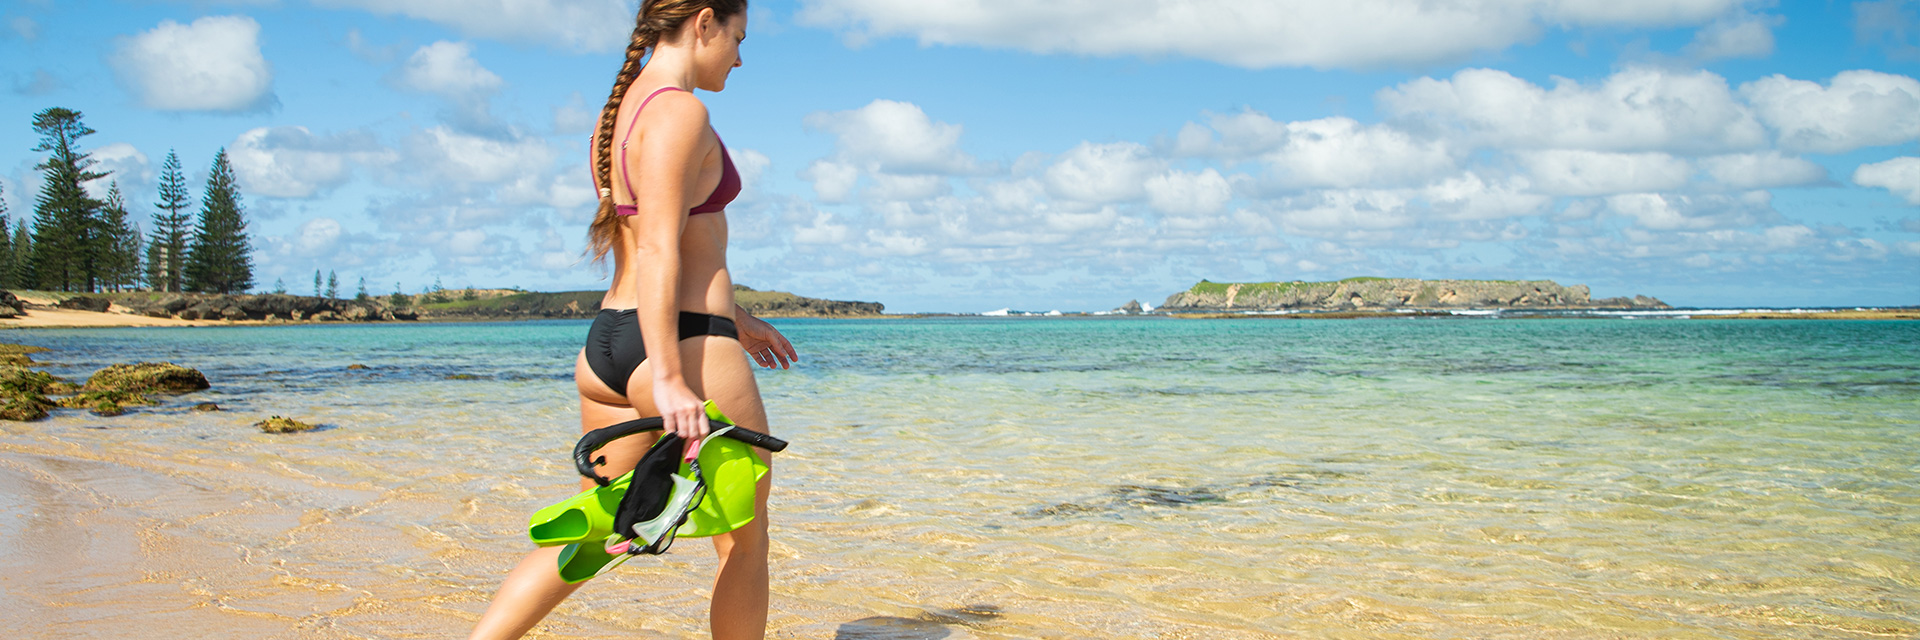 A woman in a bikini walking on the sand into the shallow sea. She is holding a snorkel, mask and flippers. An island in